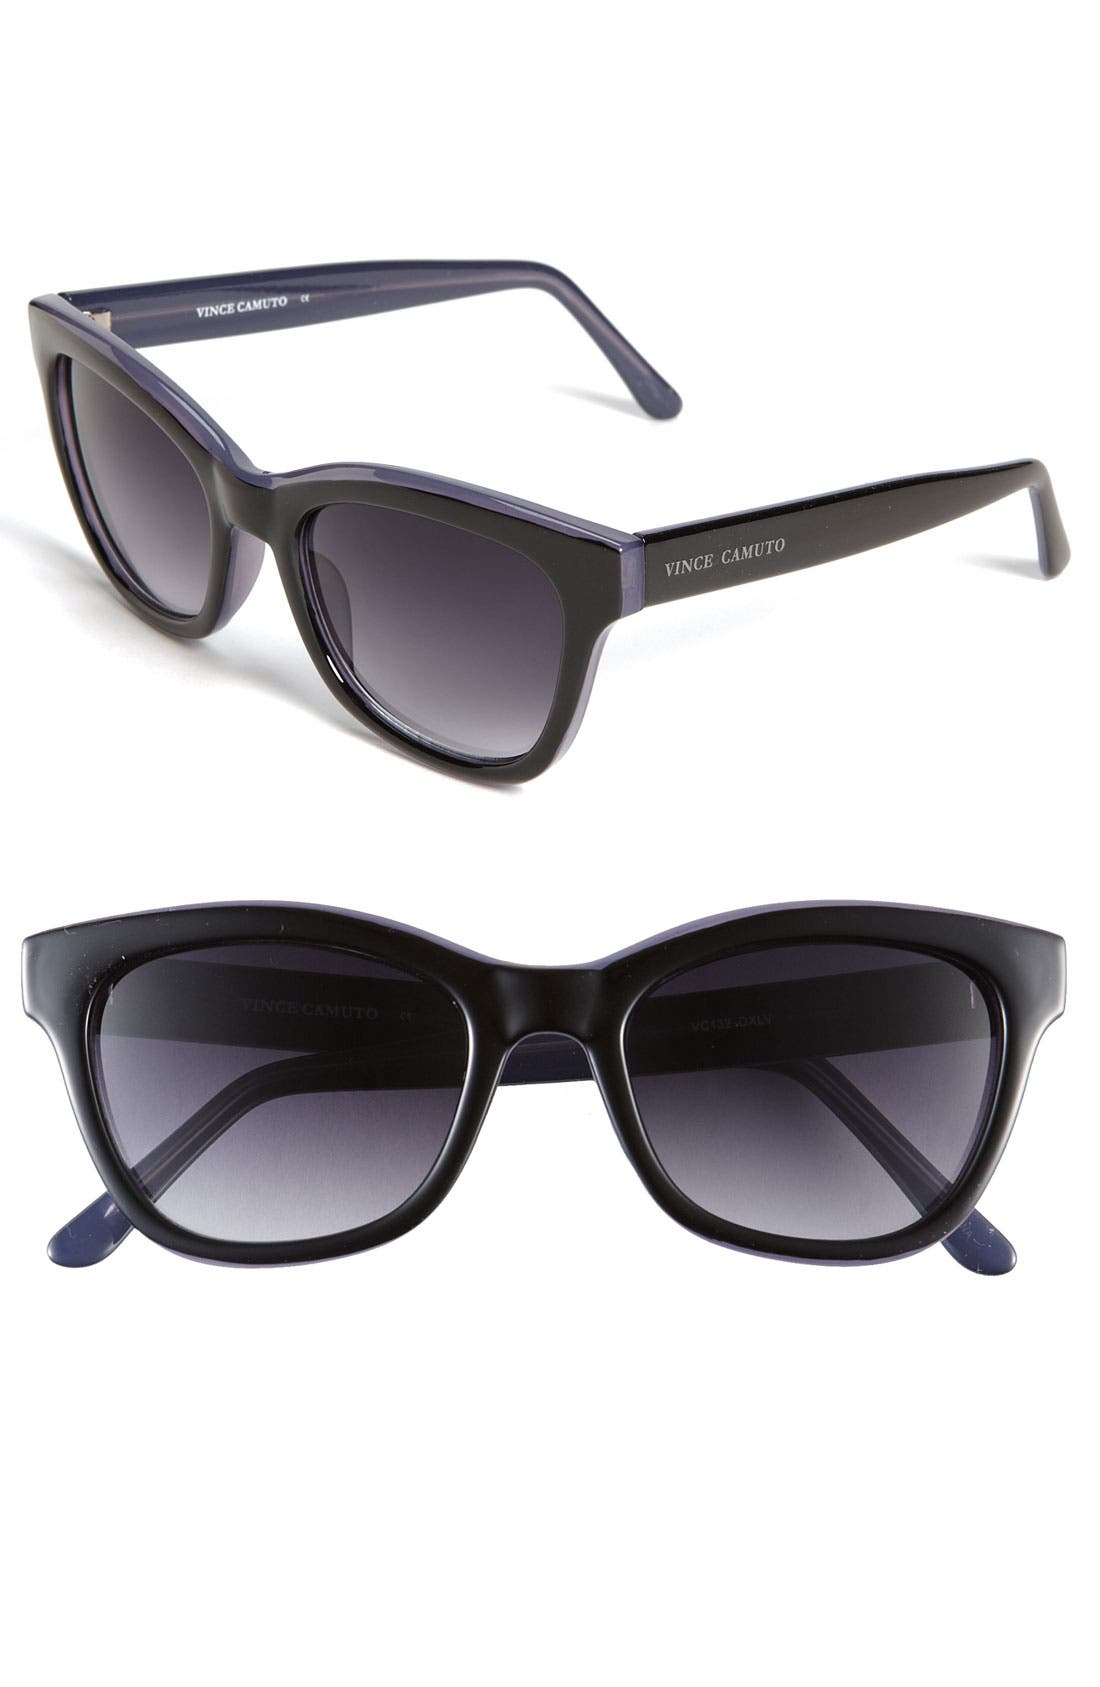 Alternate Image 1 Selected - Vince Camuto 50mm Retro Inspired Plastic Sunglasses